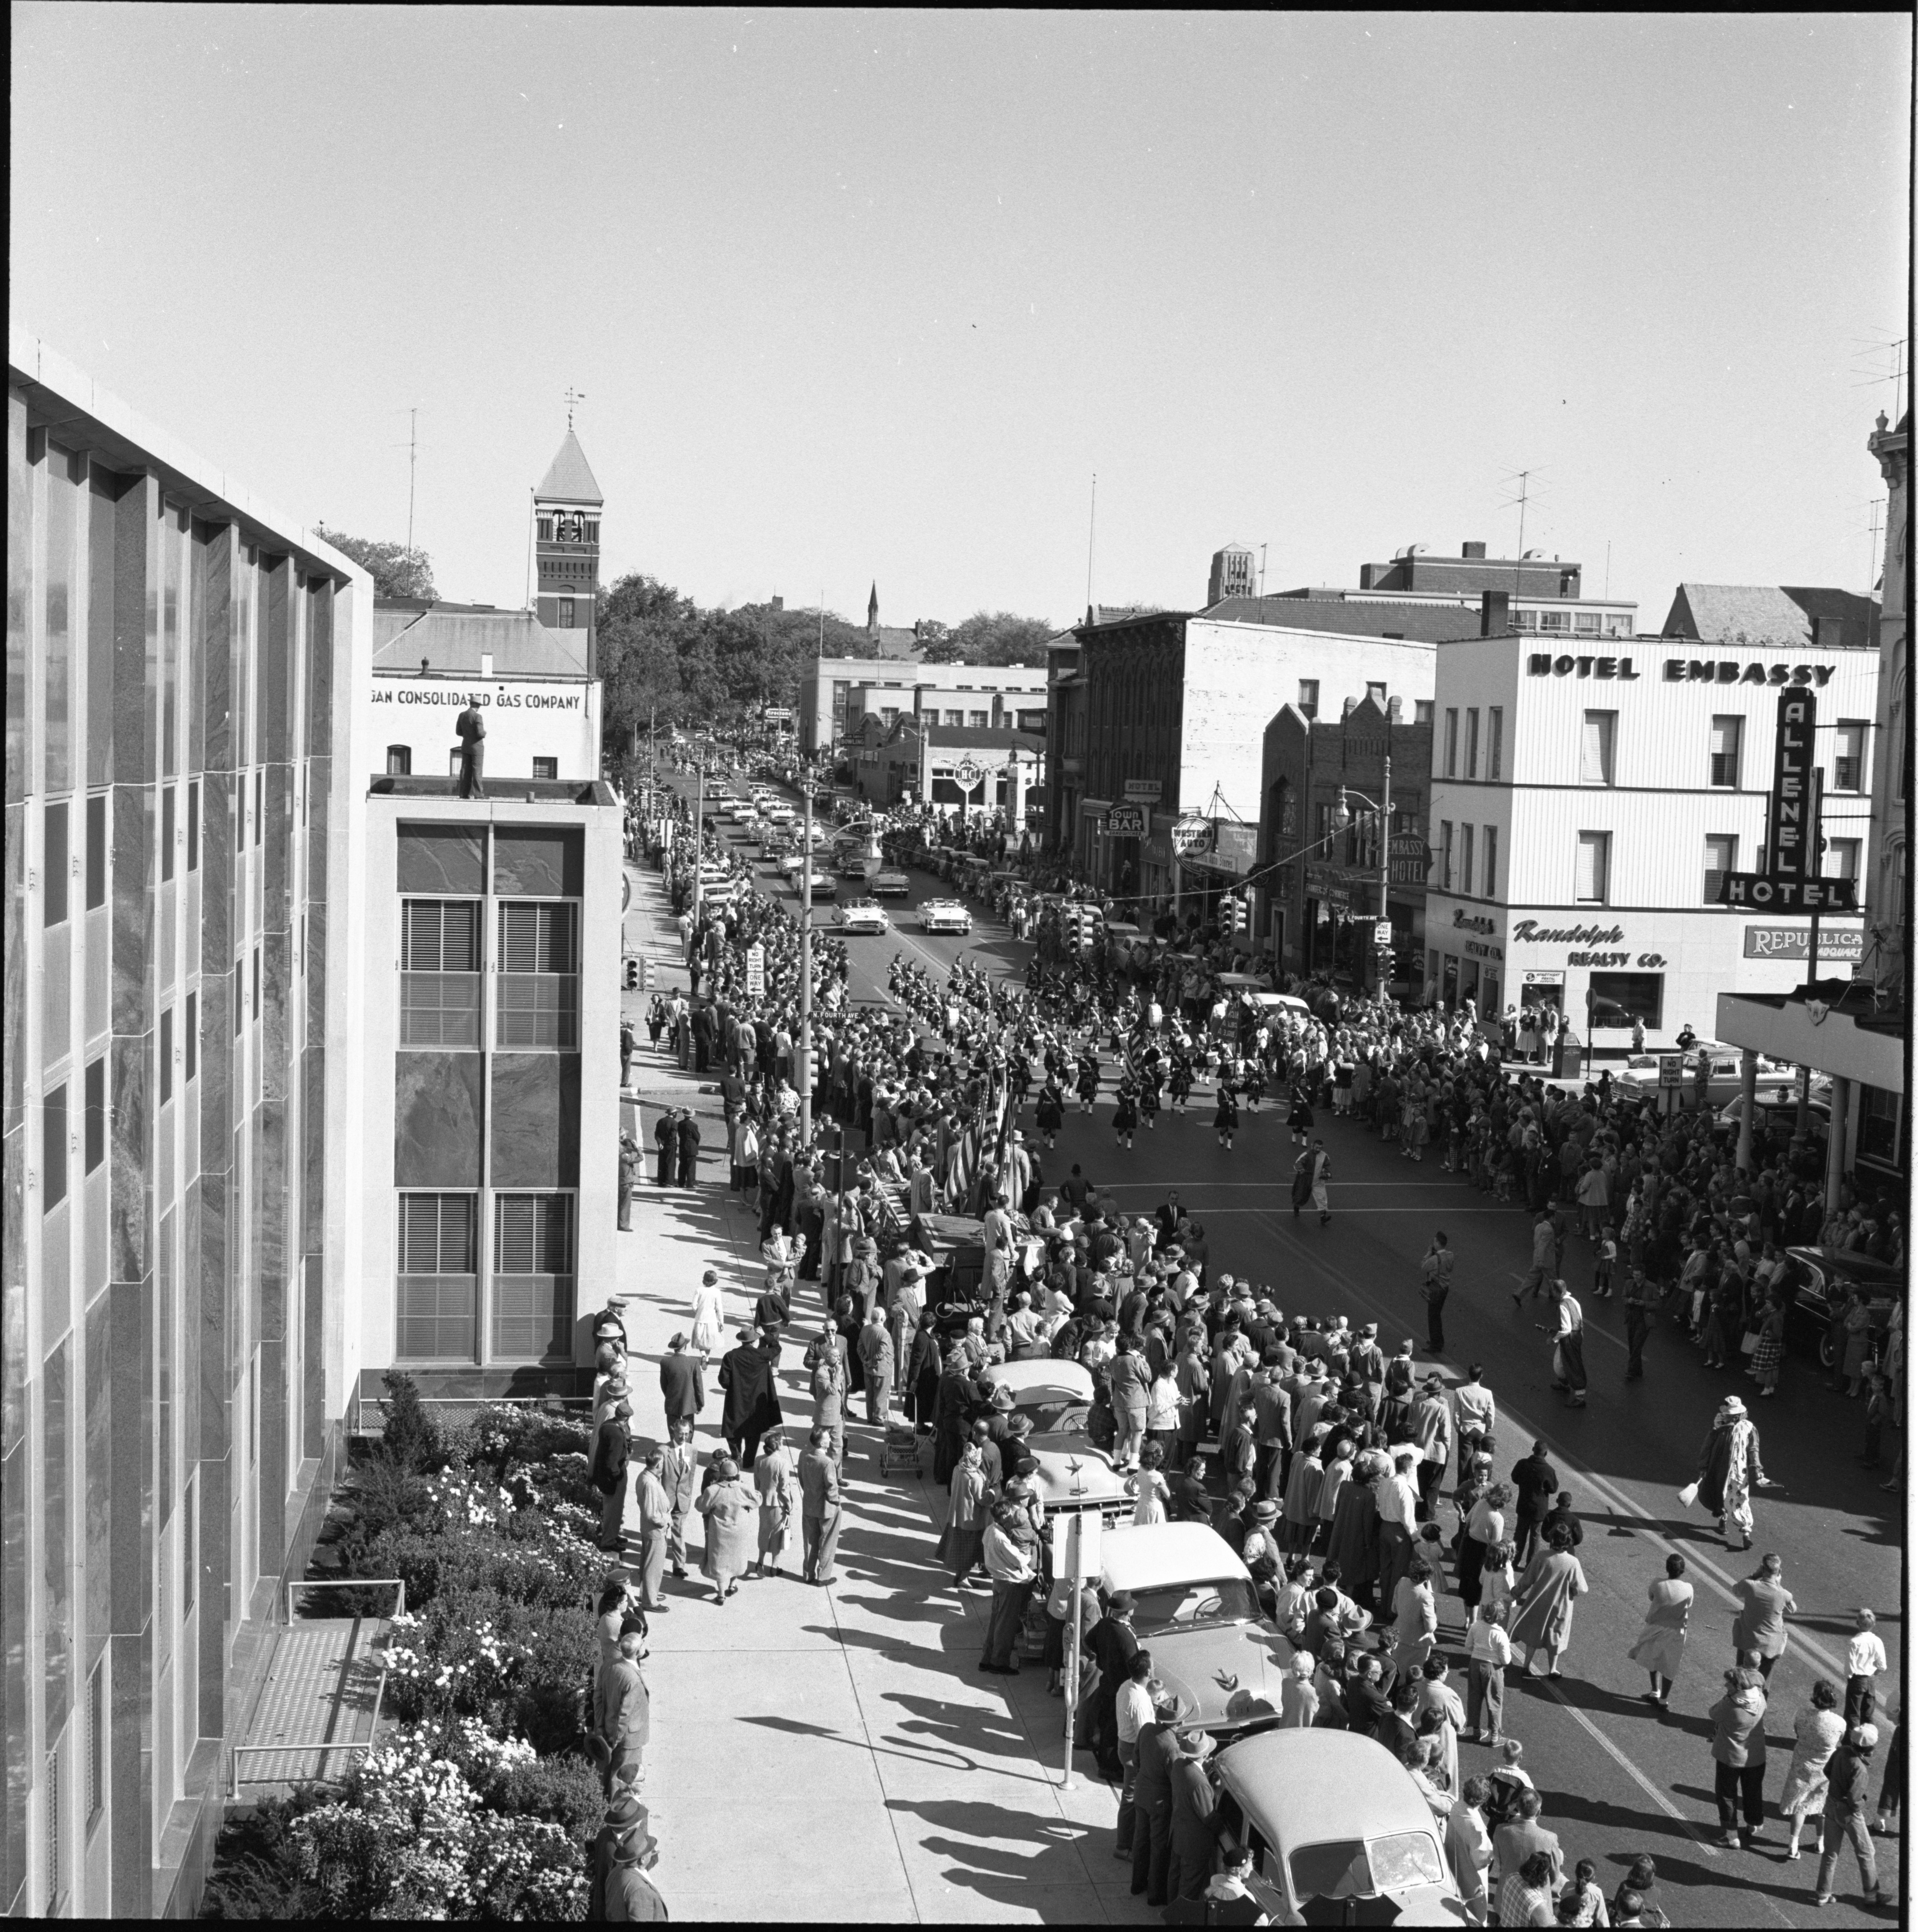 The Washtenaw County Building Dedication Parade, October 1956 image